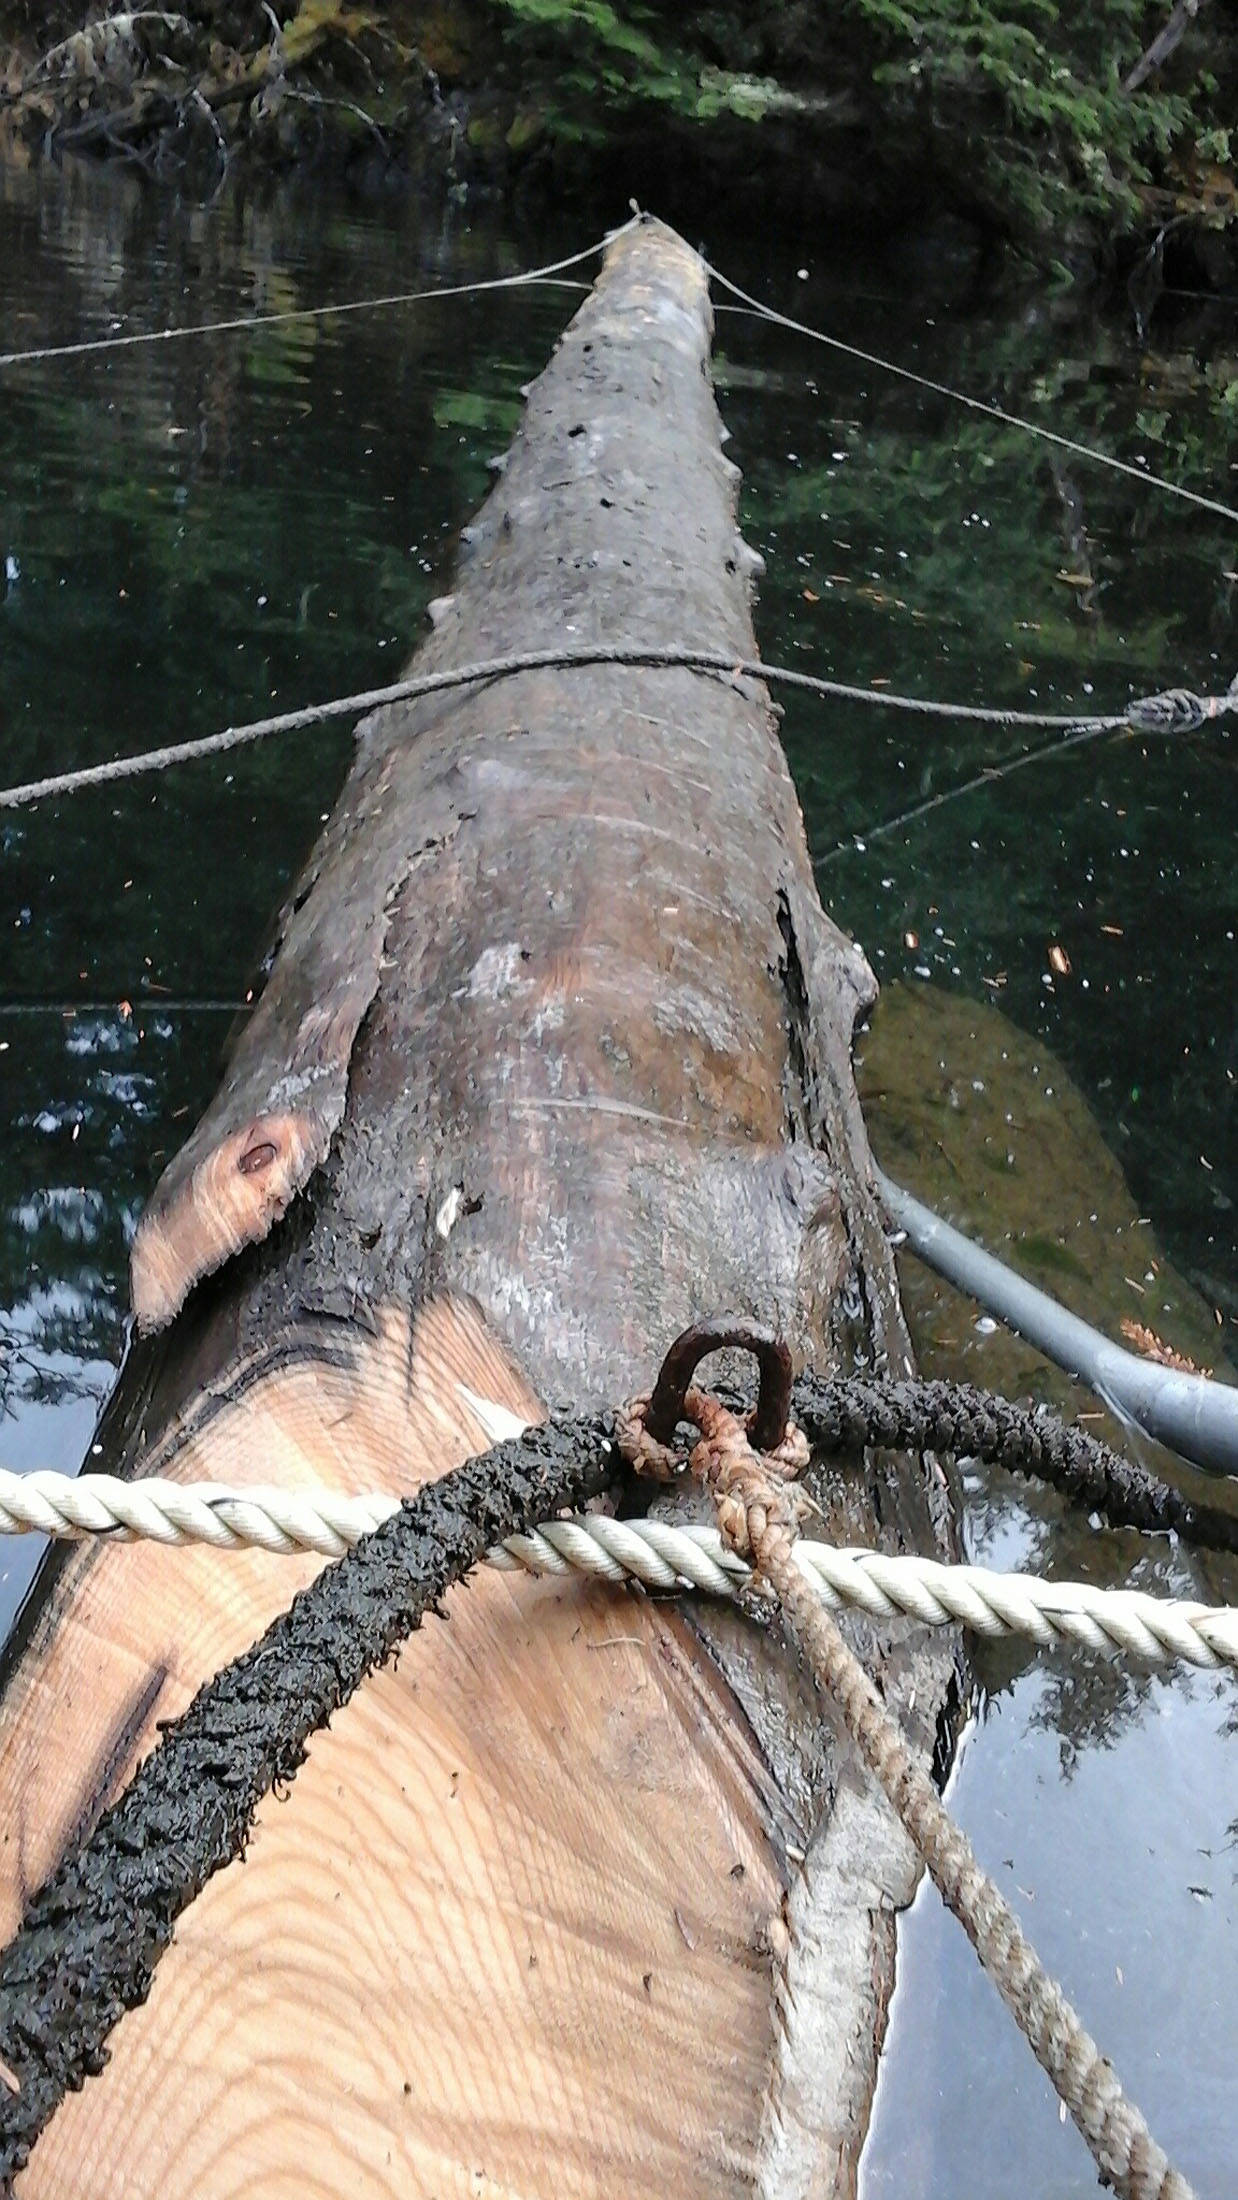 The new log's pointed end is ready to be pushed under the floathouse's brow log. Photo by Tara Neilson